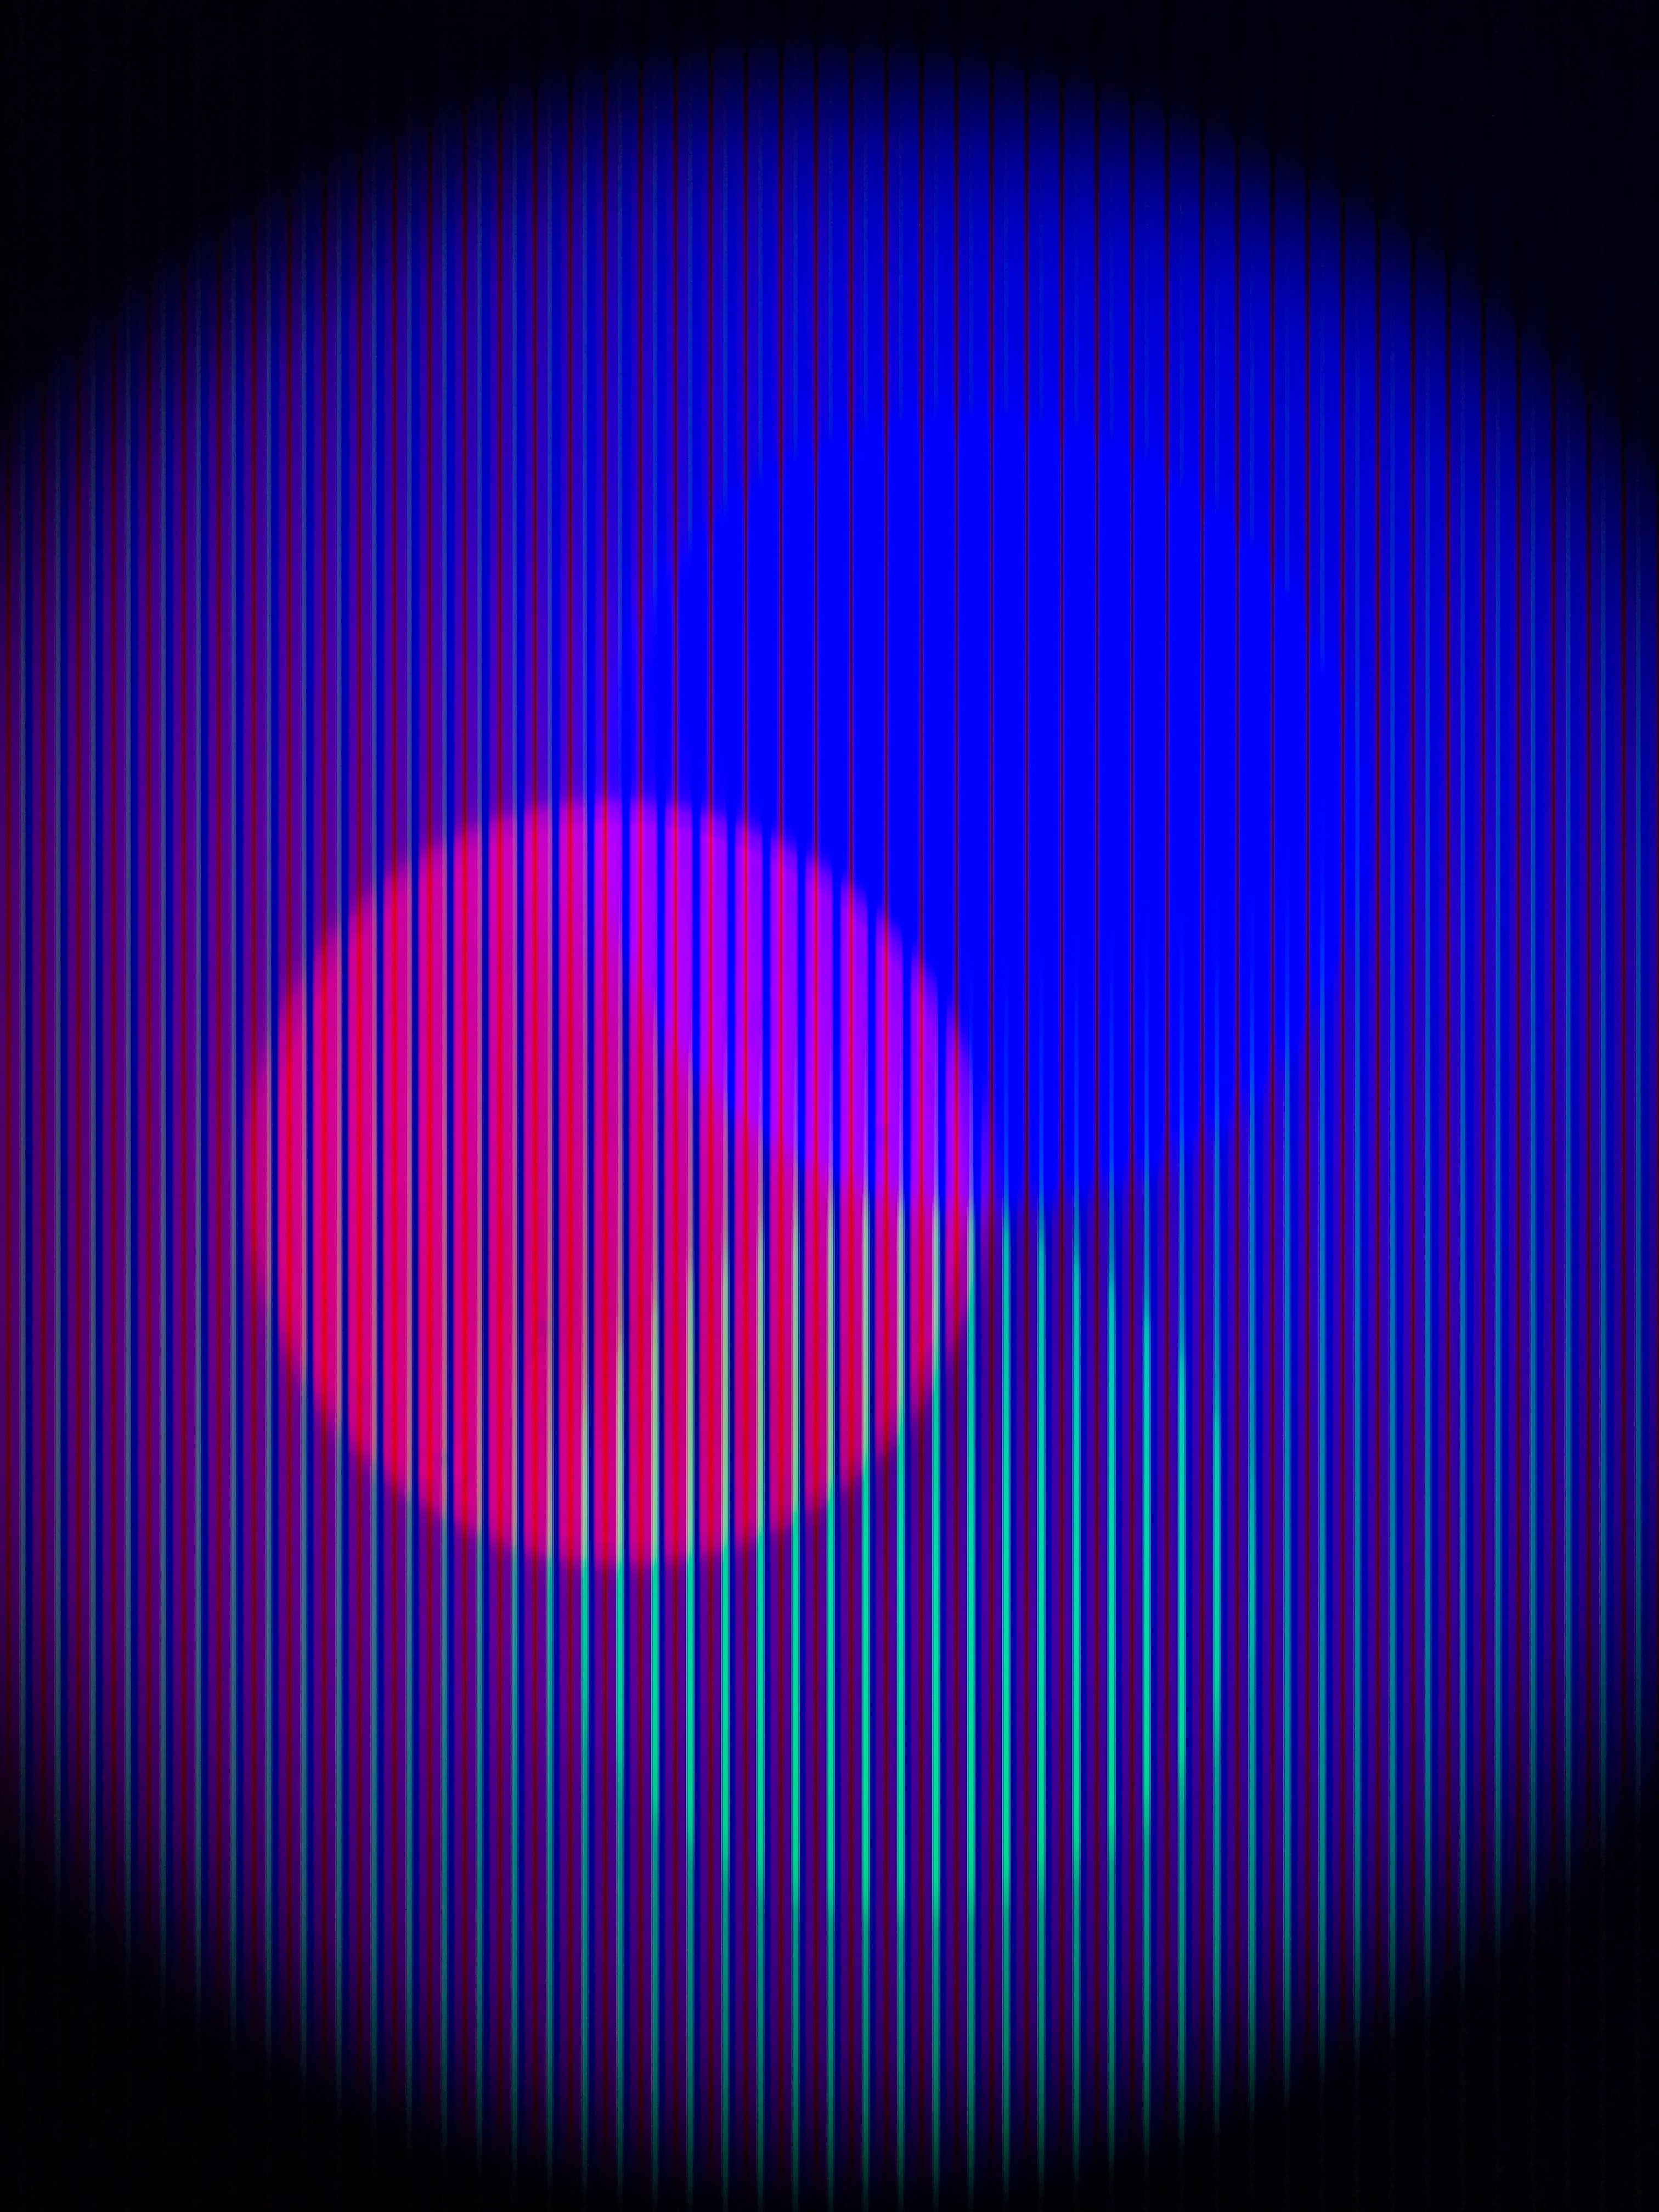 112726 download wallpaper Abstract, Circle, Stripes, Streaks, Lines, Neon screensavers and pictures for free